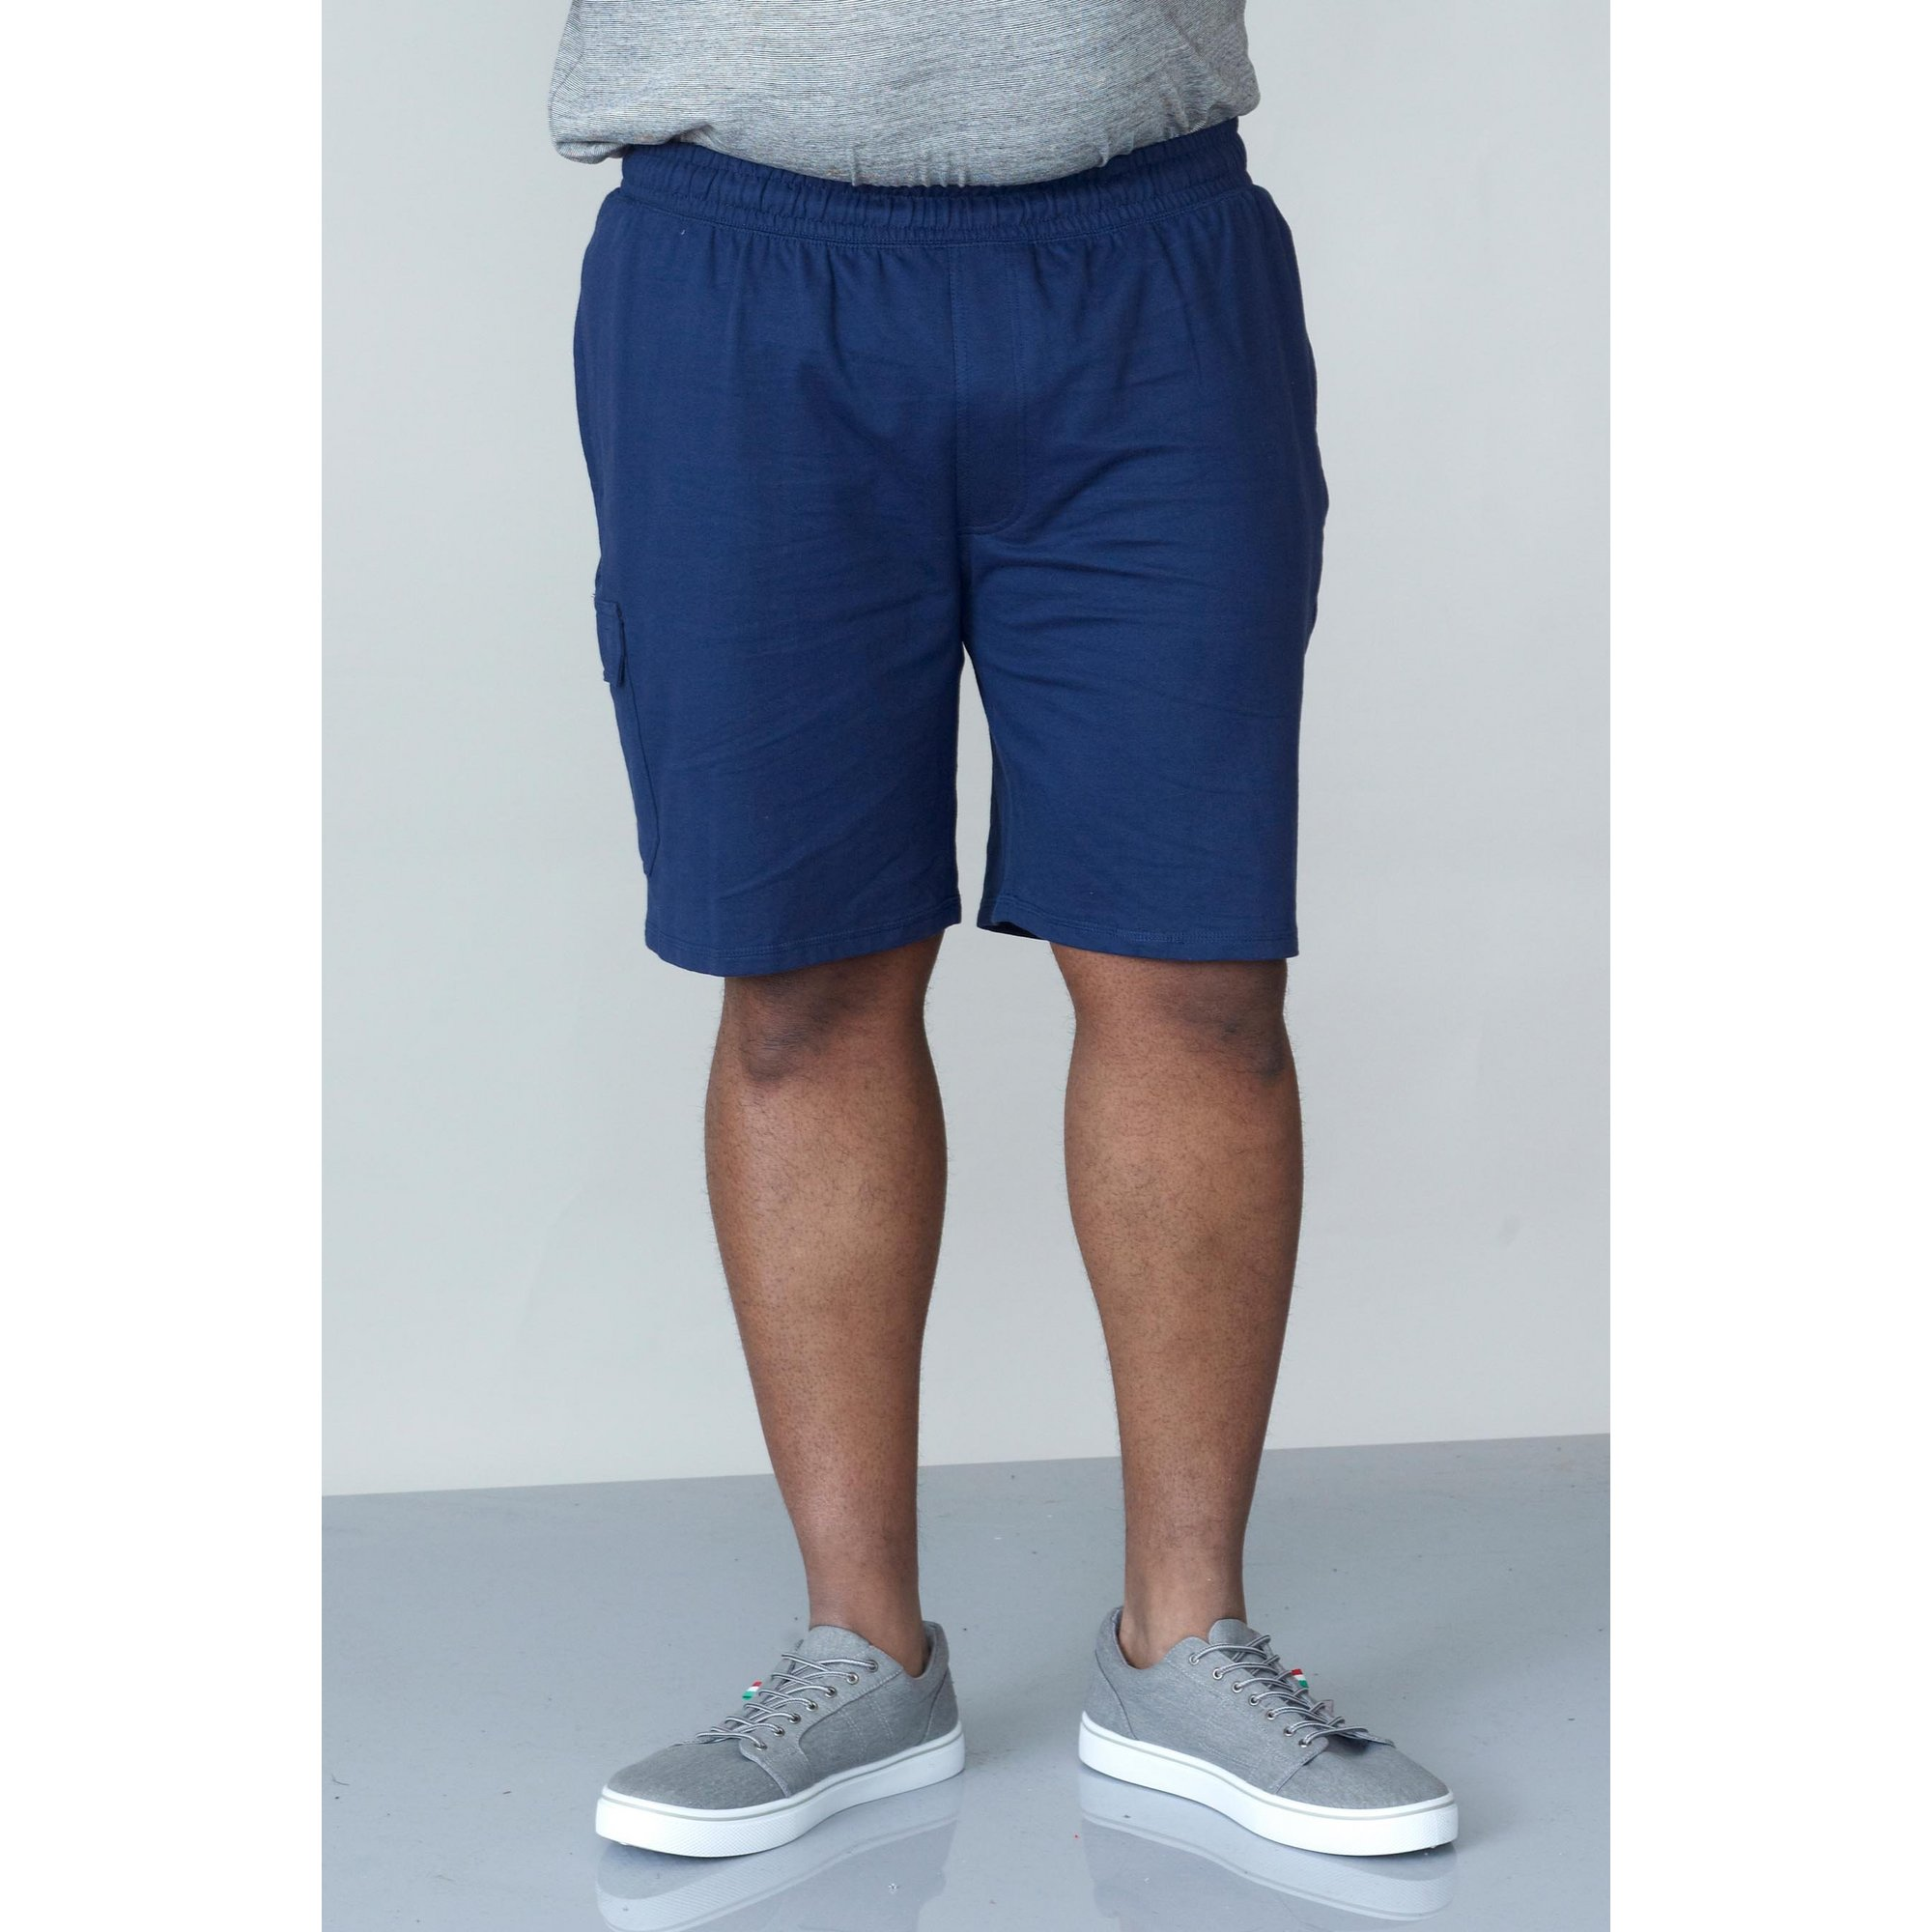 Image of D555 by Duke Big and Tall Cotton Cargo Shorts